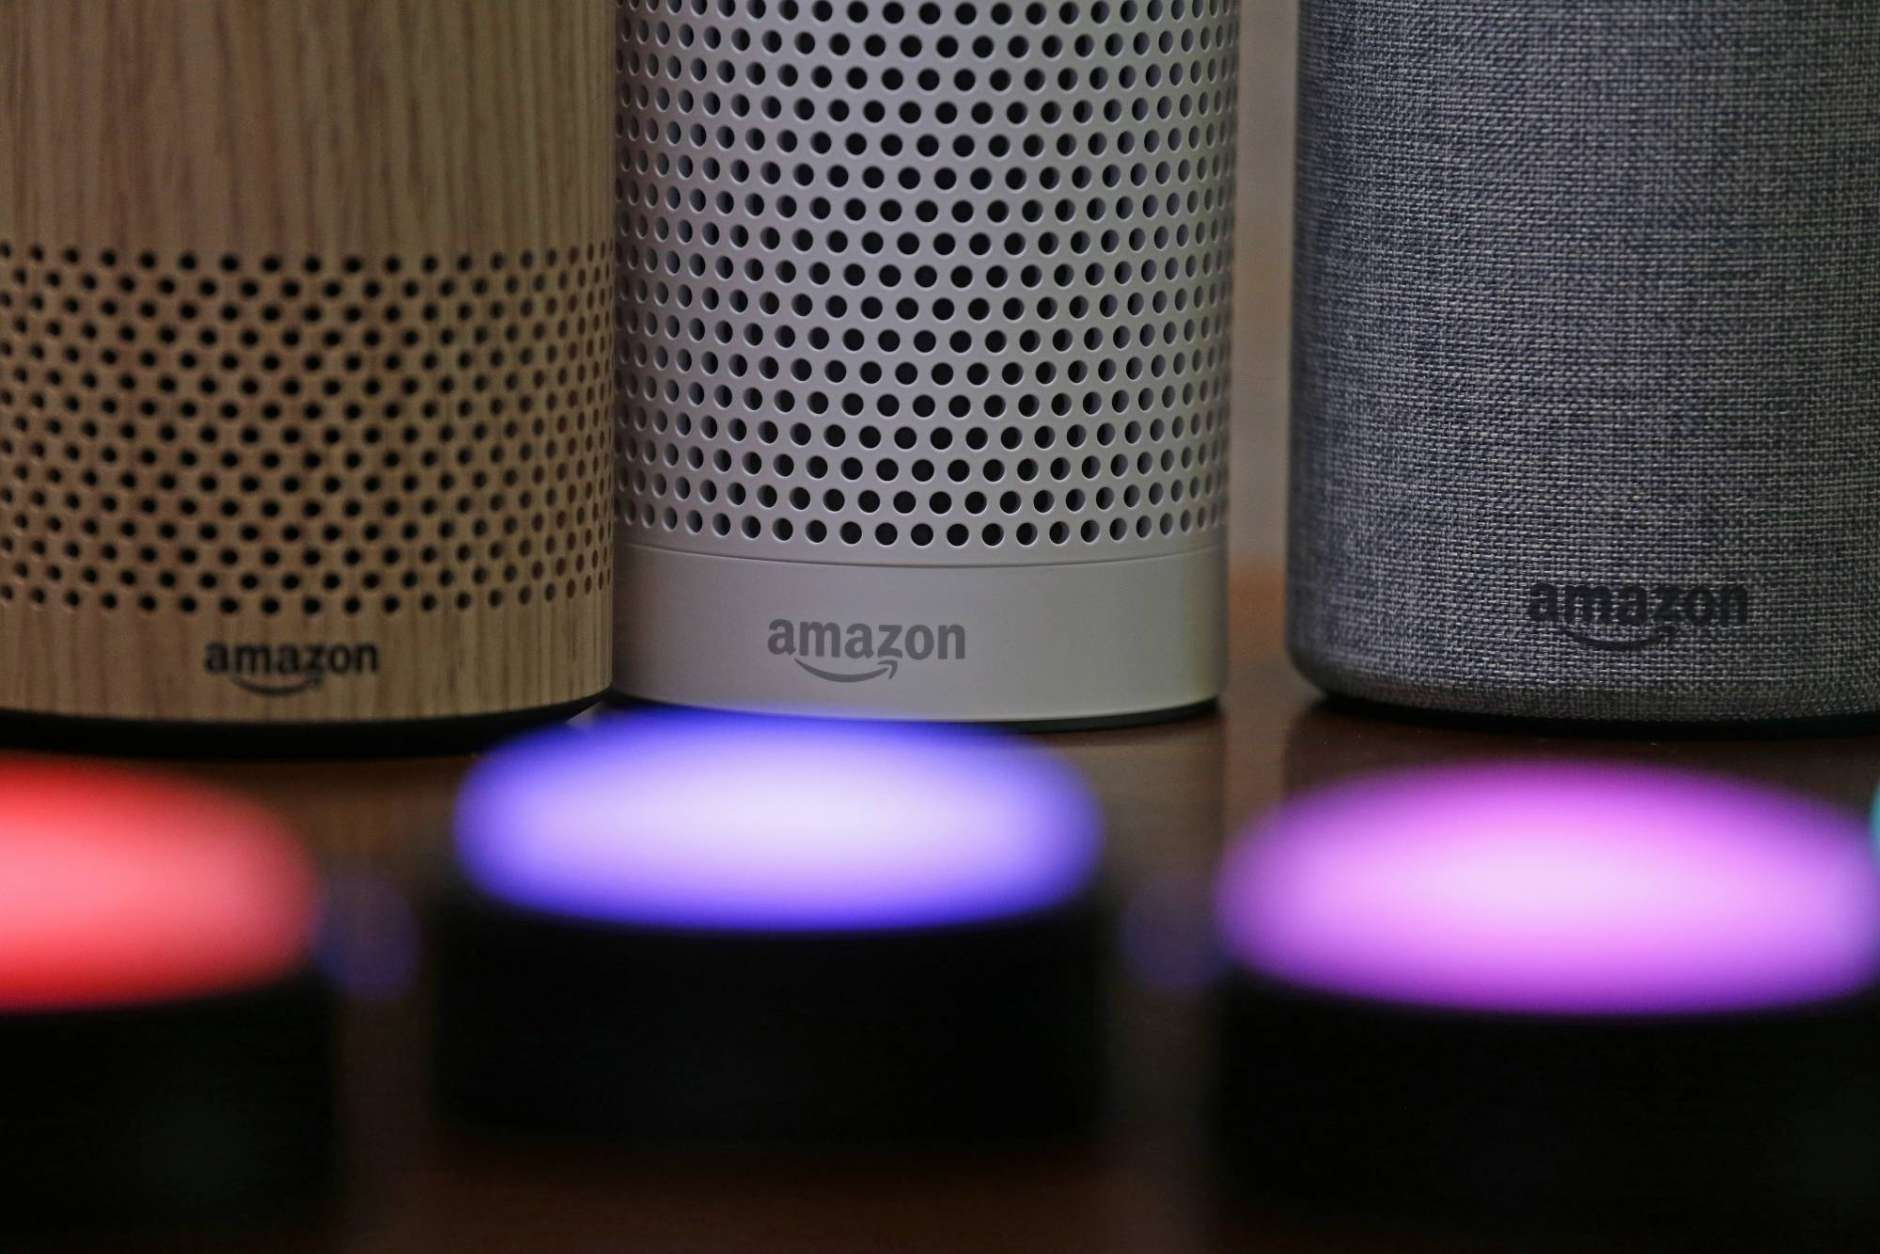 FILE - In this Wednesday, Sept. 27, 2017, file photo, Amazon Echo and Echo Plus devices, behind, sit near illuminated Echo Button devices during an event announcing several new Amazon products by the company, in Seattle. As people get voice-activated speakers and online security cameras for convenience and peace of mind, are they also giving hackers a key to their homes? Many devices from reputable manufacturers have safeguards built in, but safeguards aren't the same as guarantees. (AP Photo/Elaine Thompson, File)